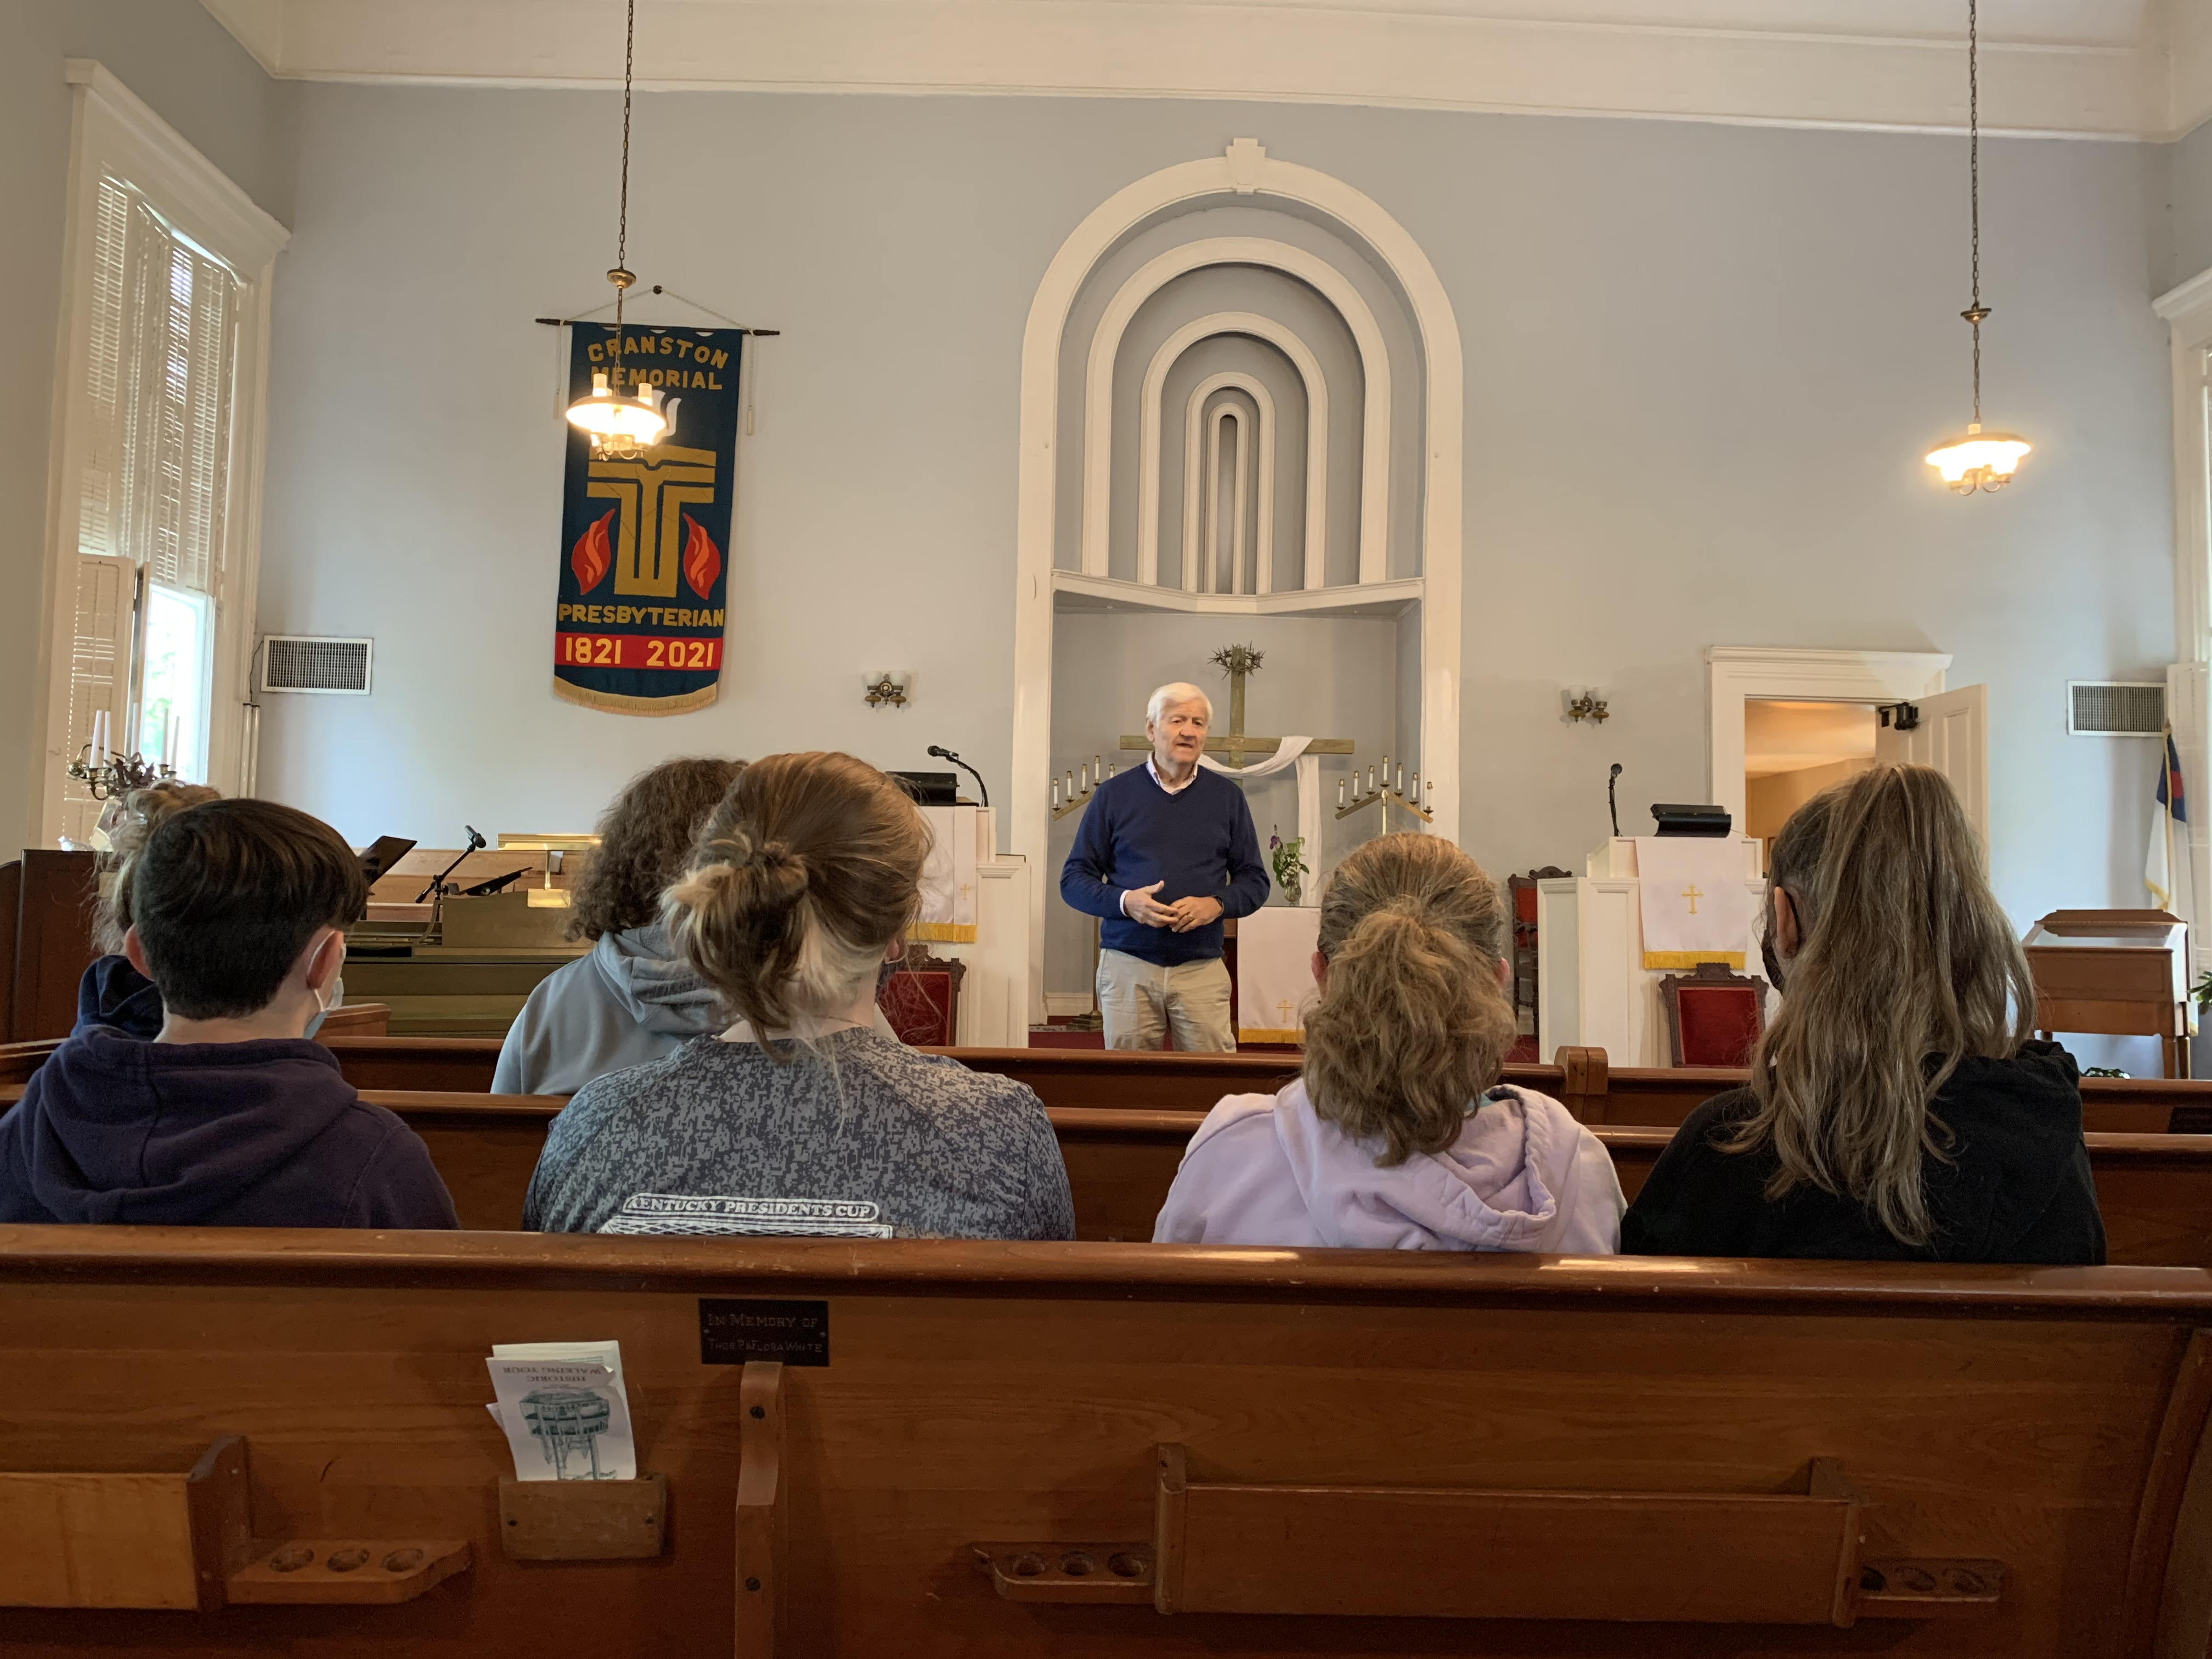 Robert Lees talks about history in local historic site